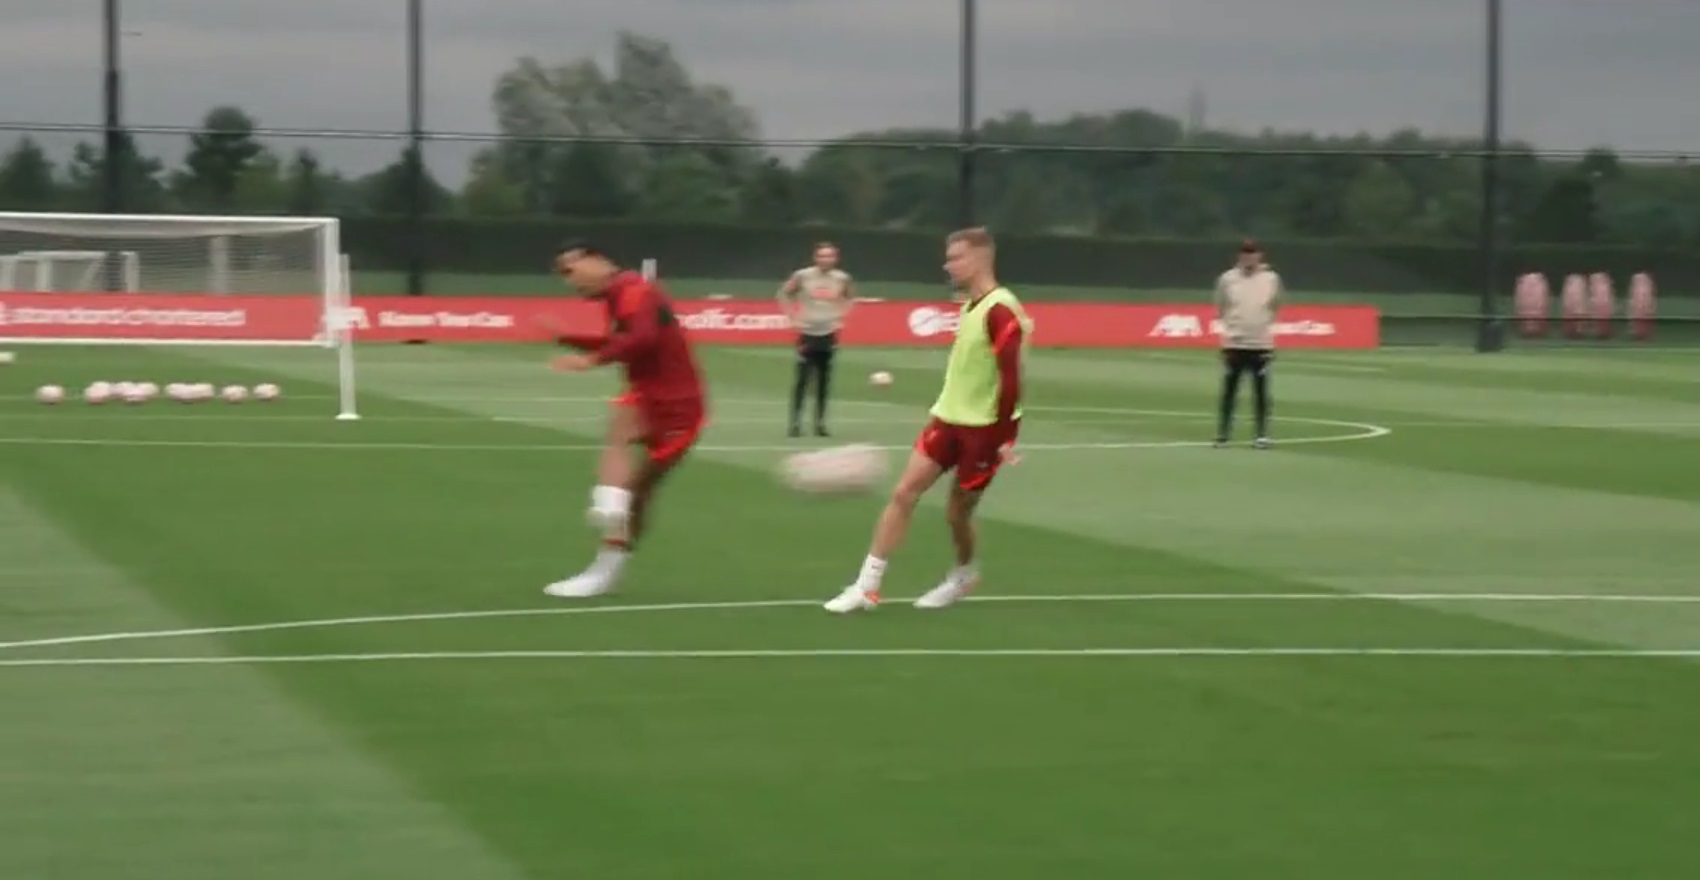 (Video) Virgil van Dijk beats Alisson with tidy shot from 20 yards in Liverpool training